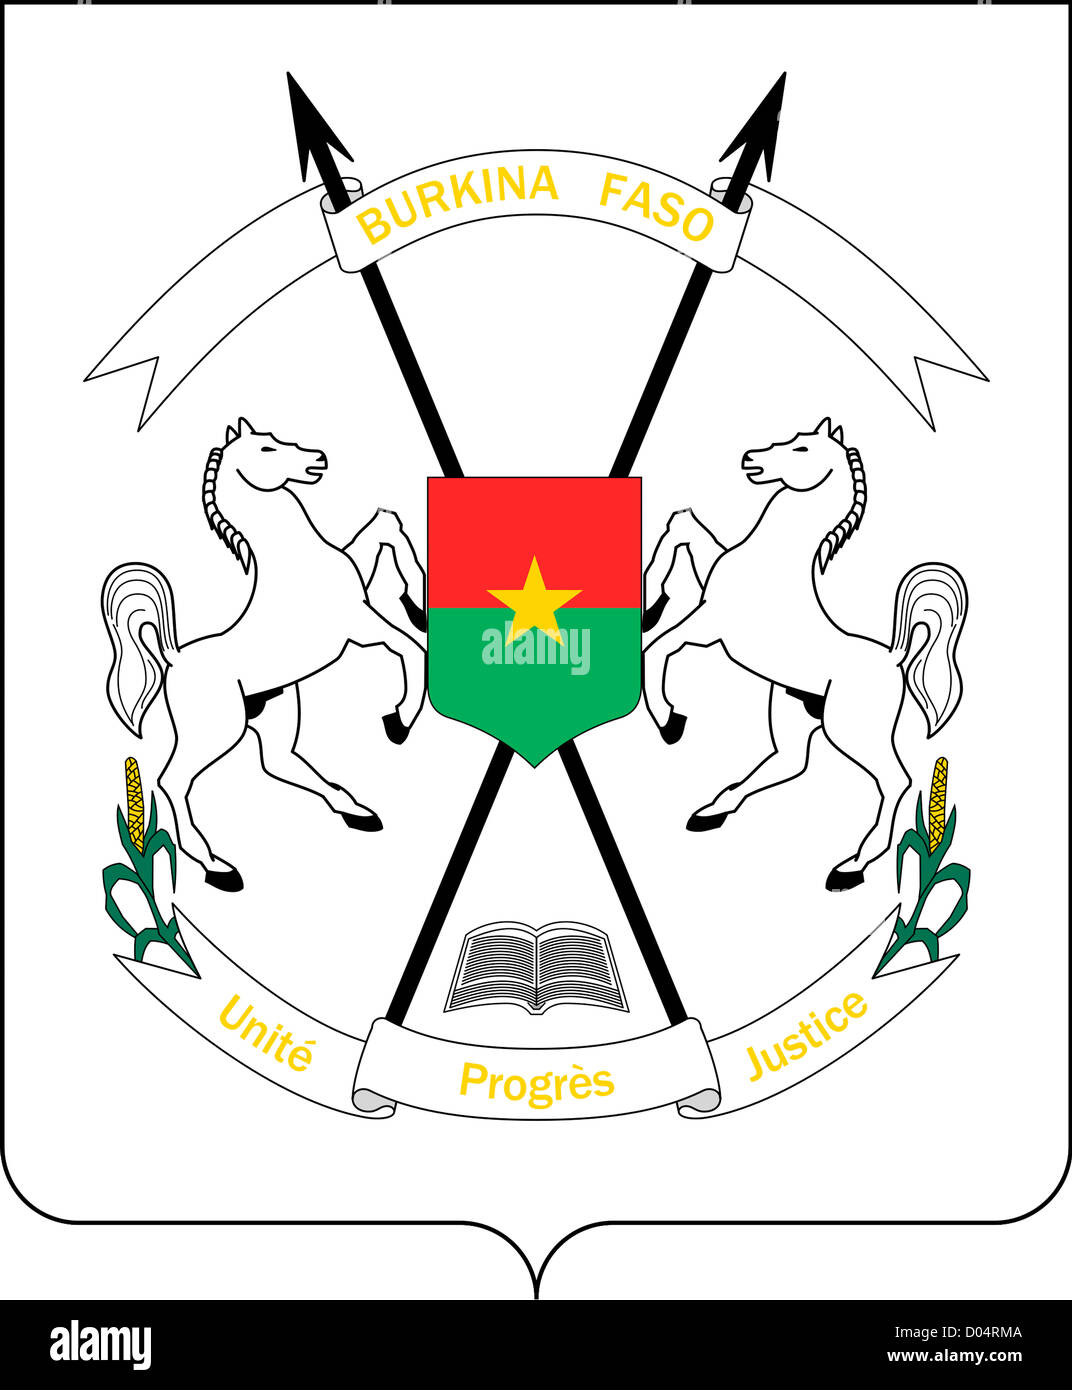 National coat of arms of the Republic of Burkina Faso. - Stock Image